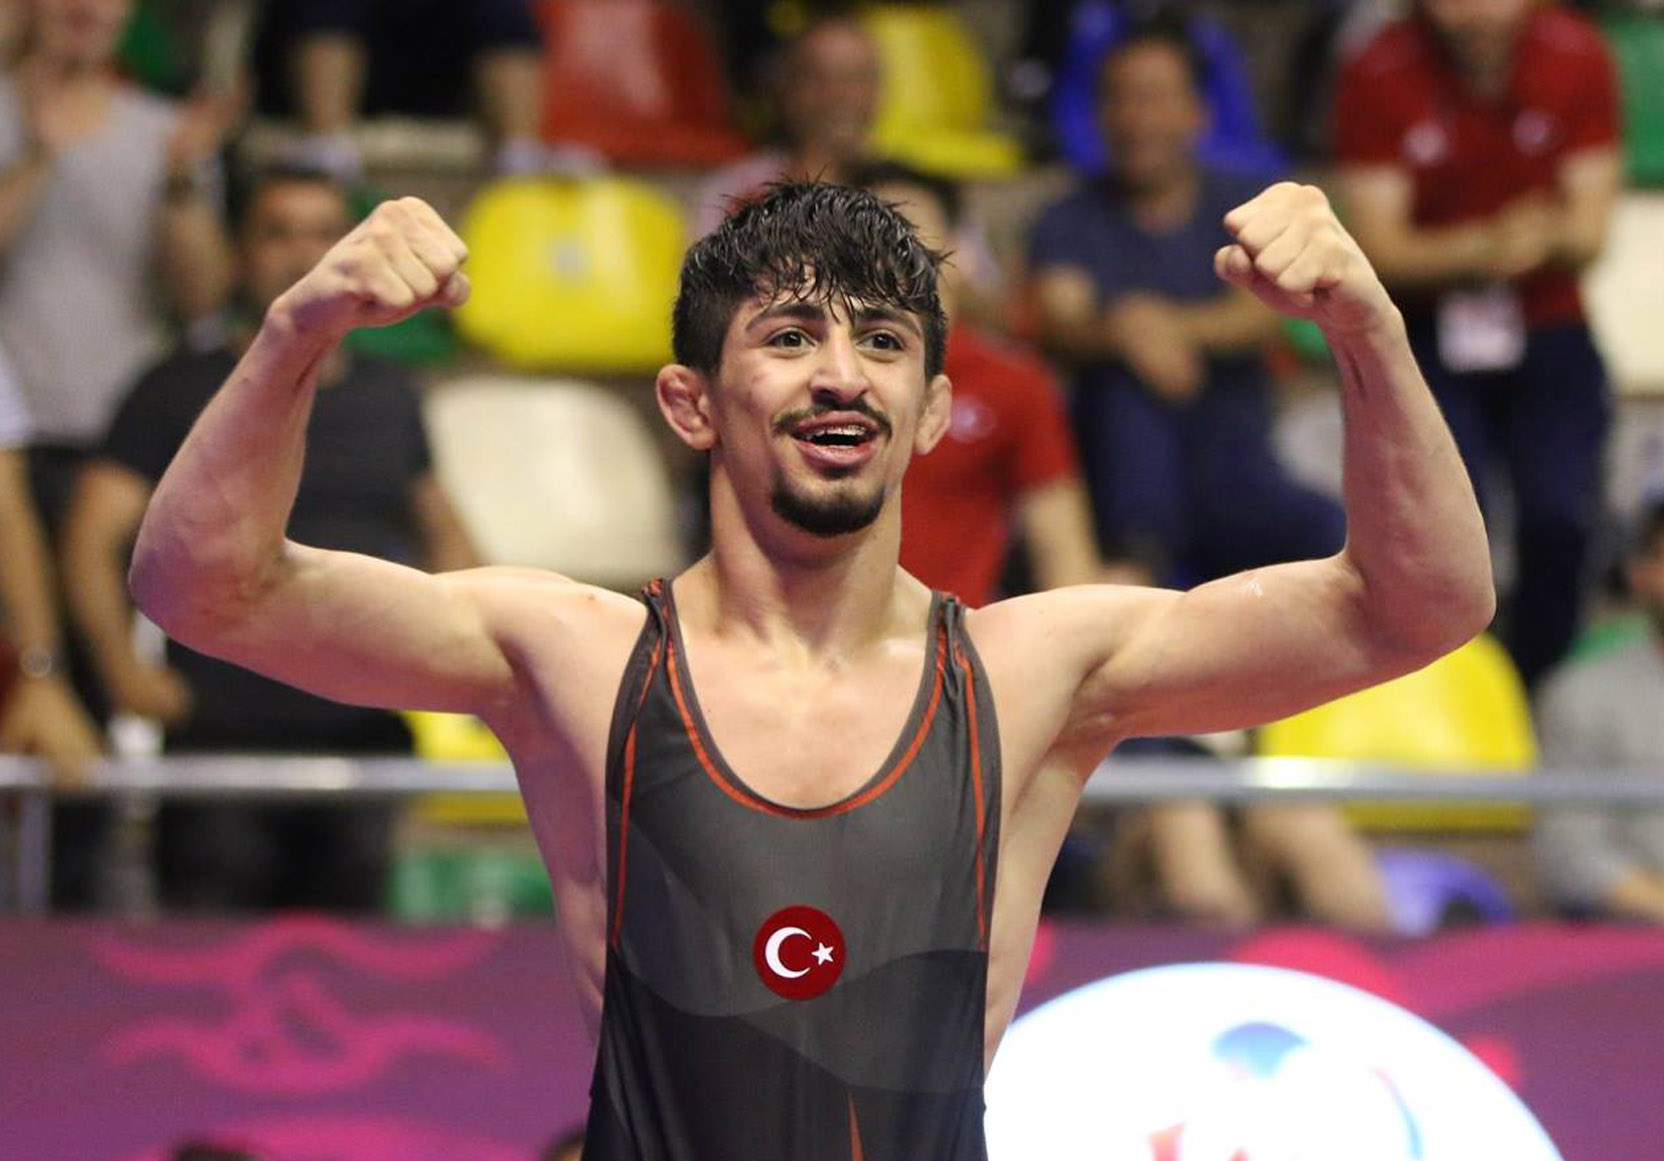 Young wrestlers of U-23 European Championships